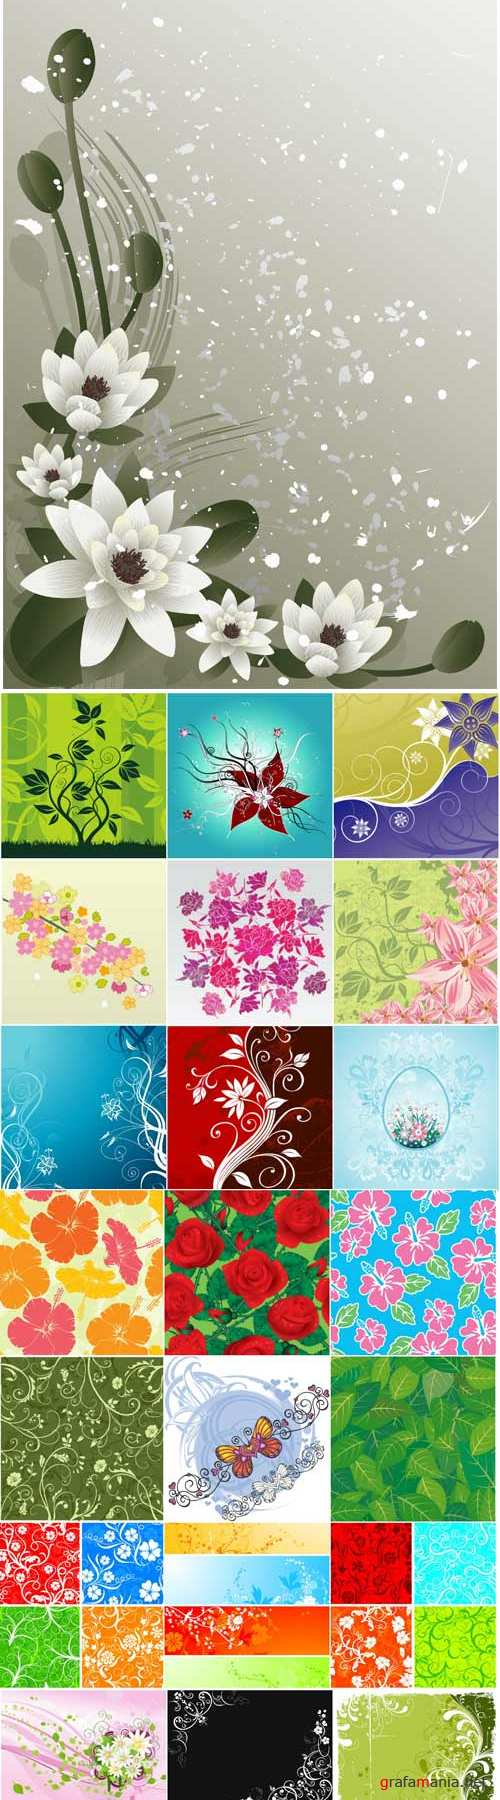 Floral patterns backgrounds stock vector - 5